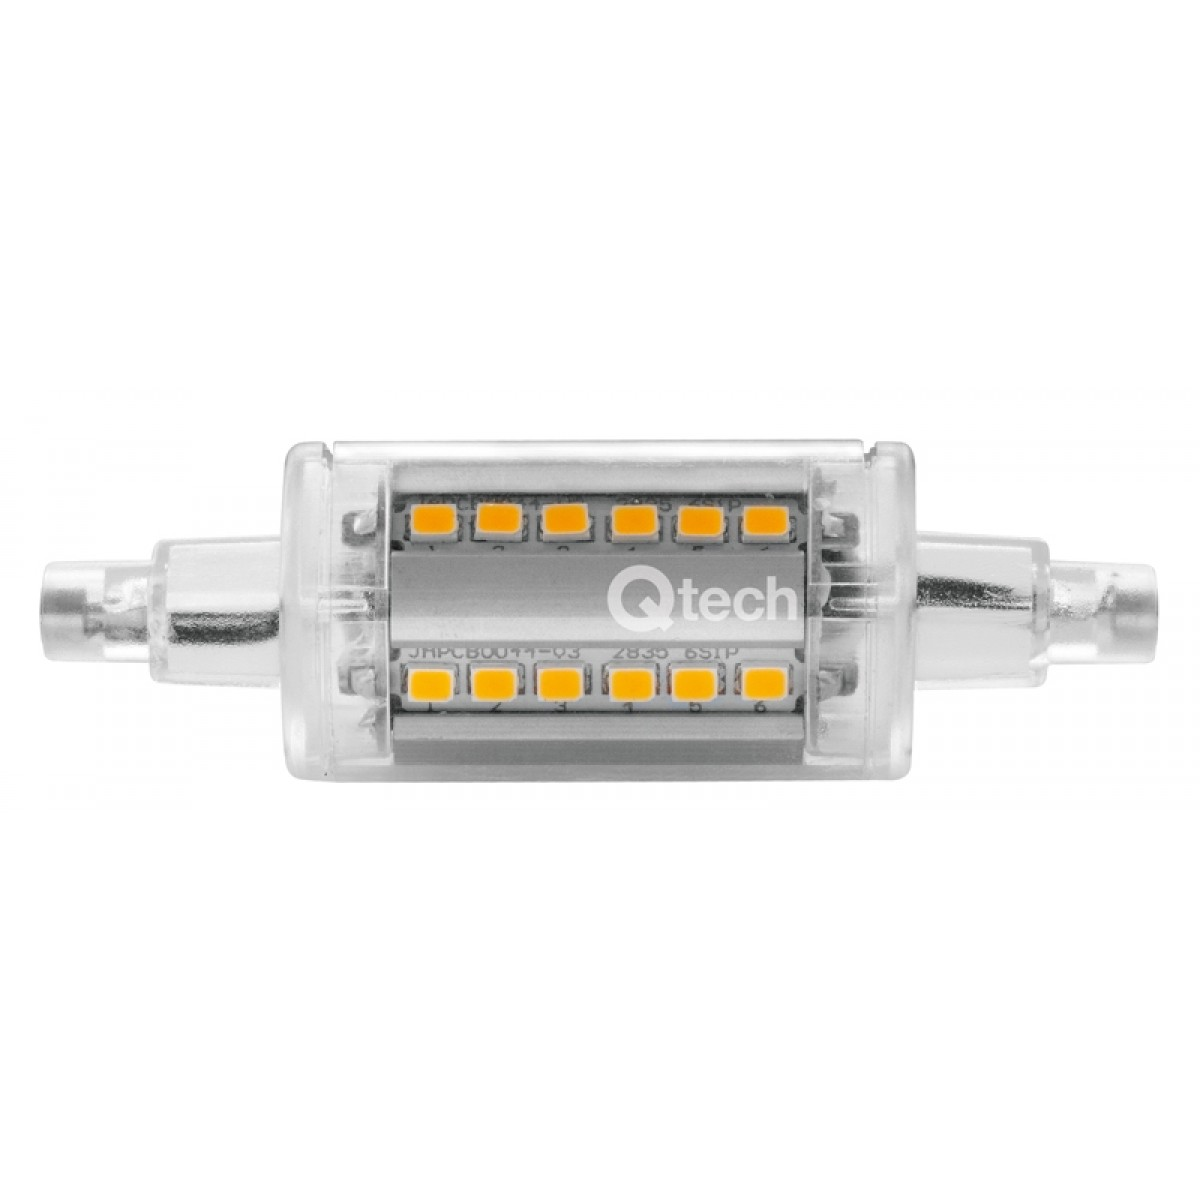 Qtech lampadina led lineare r7s 78mm 5w for Lampadina r7s led 78mm